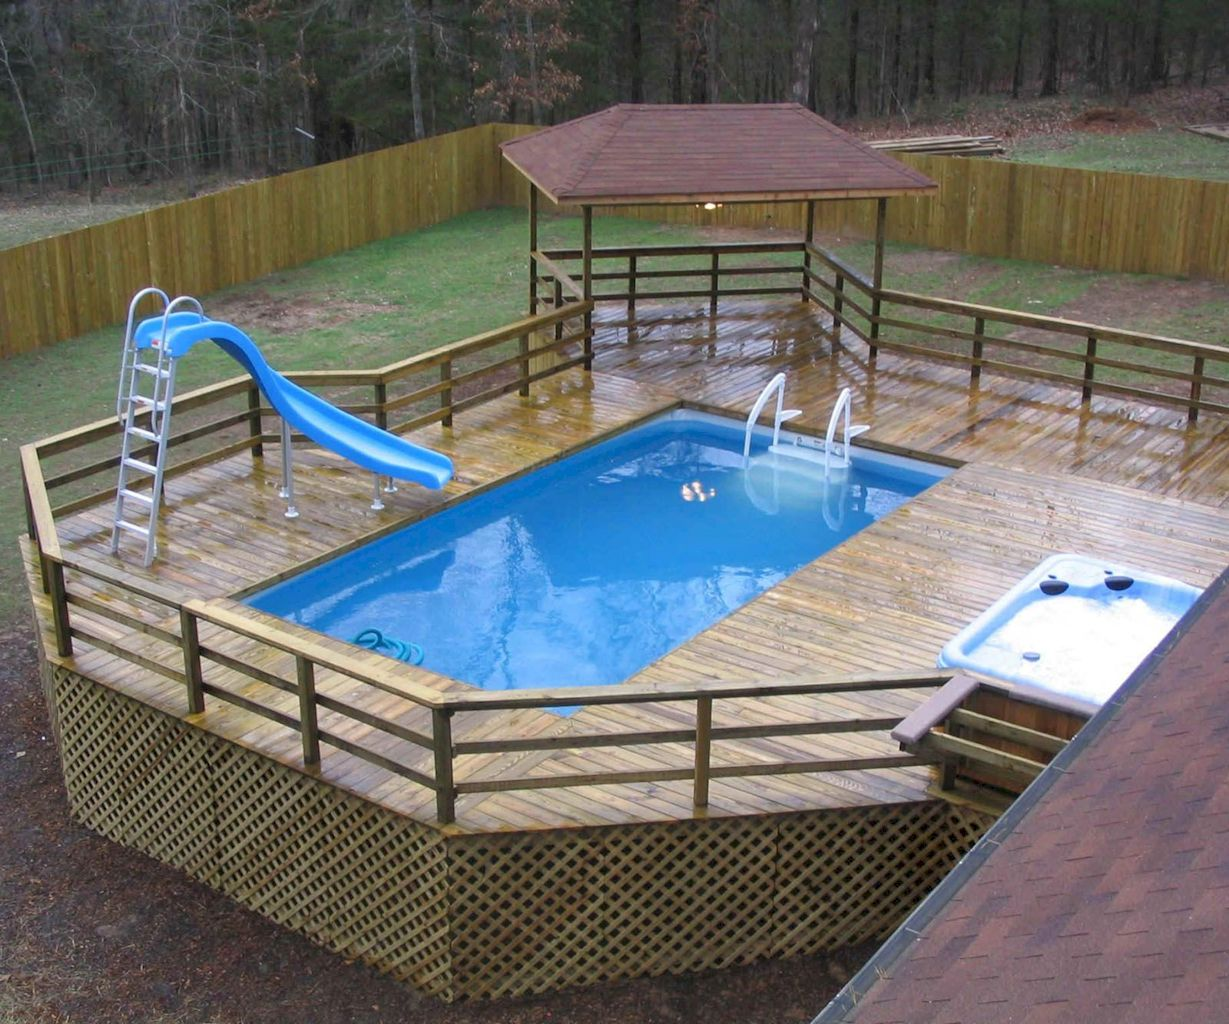 Simple pool designs built above ground designed with cheap materials for simple outdoor relieves Image 3